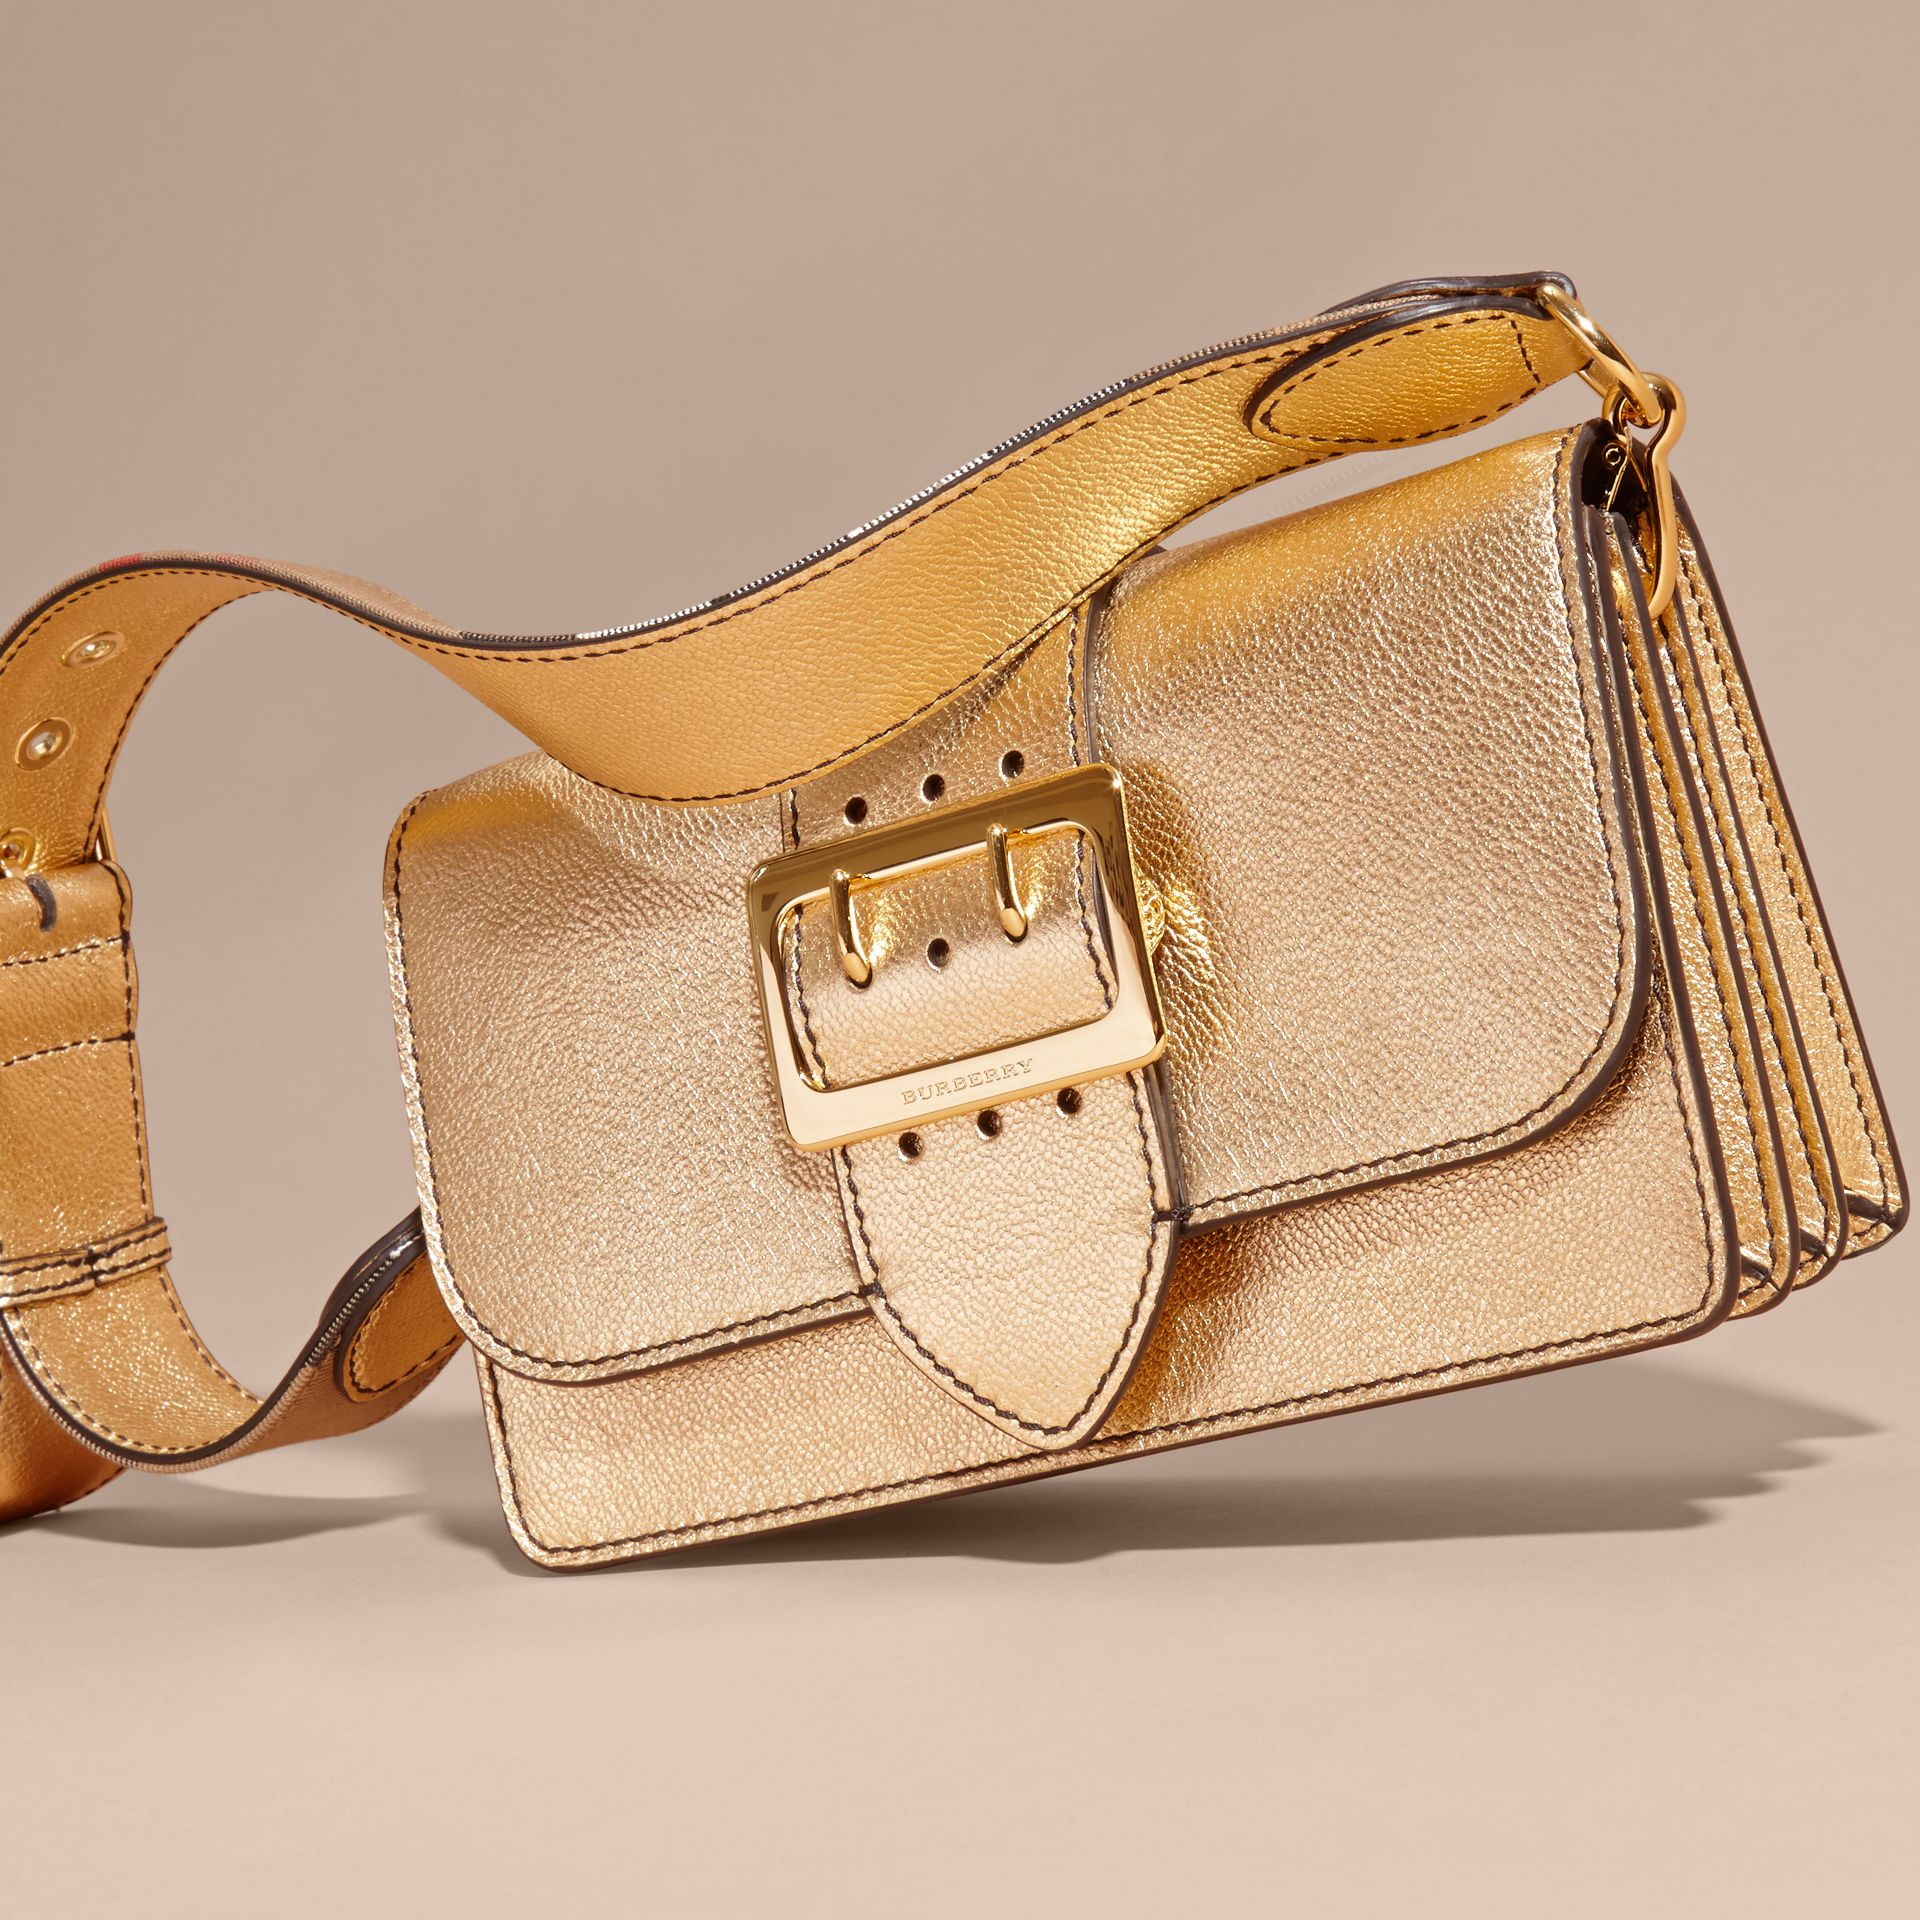 Goldfarben The Medium Buckle Bag aus Metallic-Leder - Galerie-Bild 8